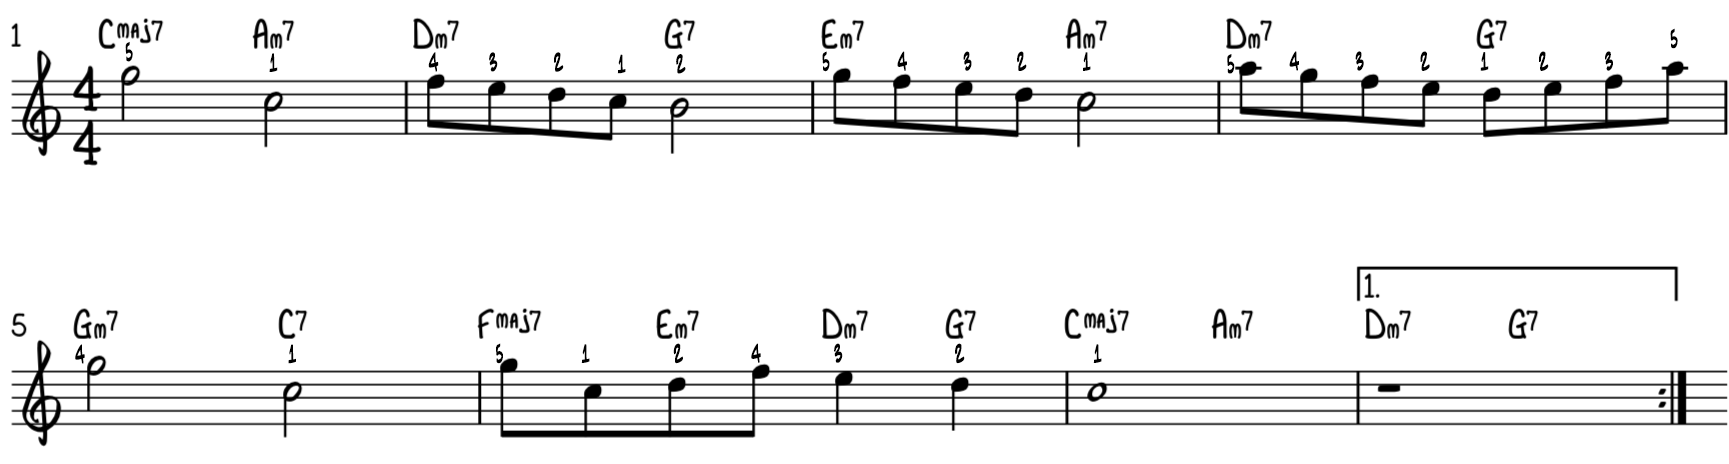 Jazz ballad melody and chords lead sheet with fingering